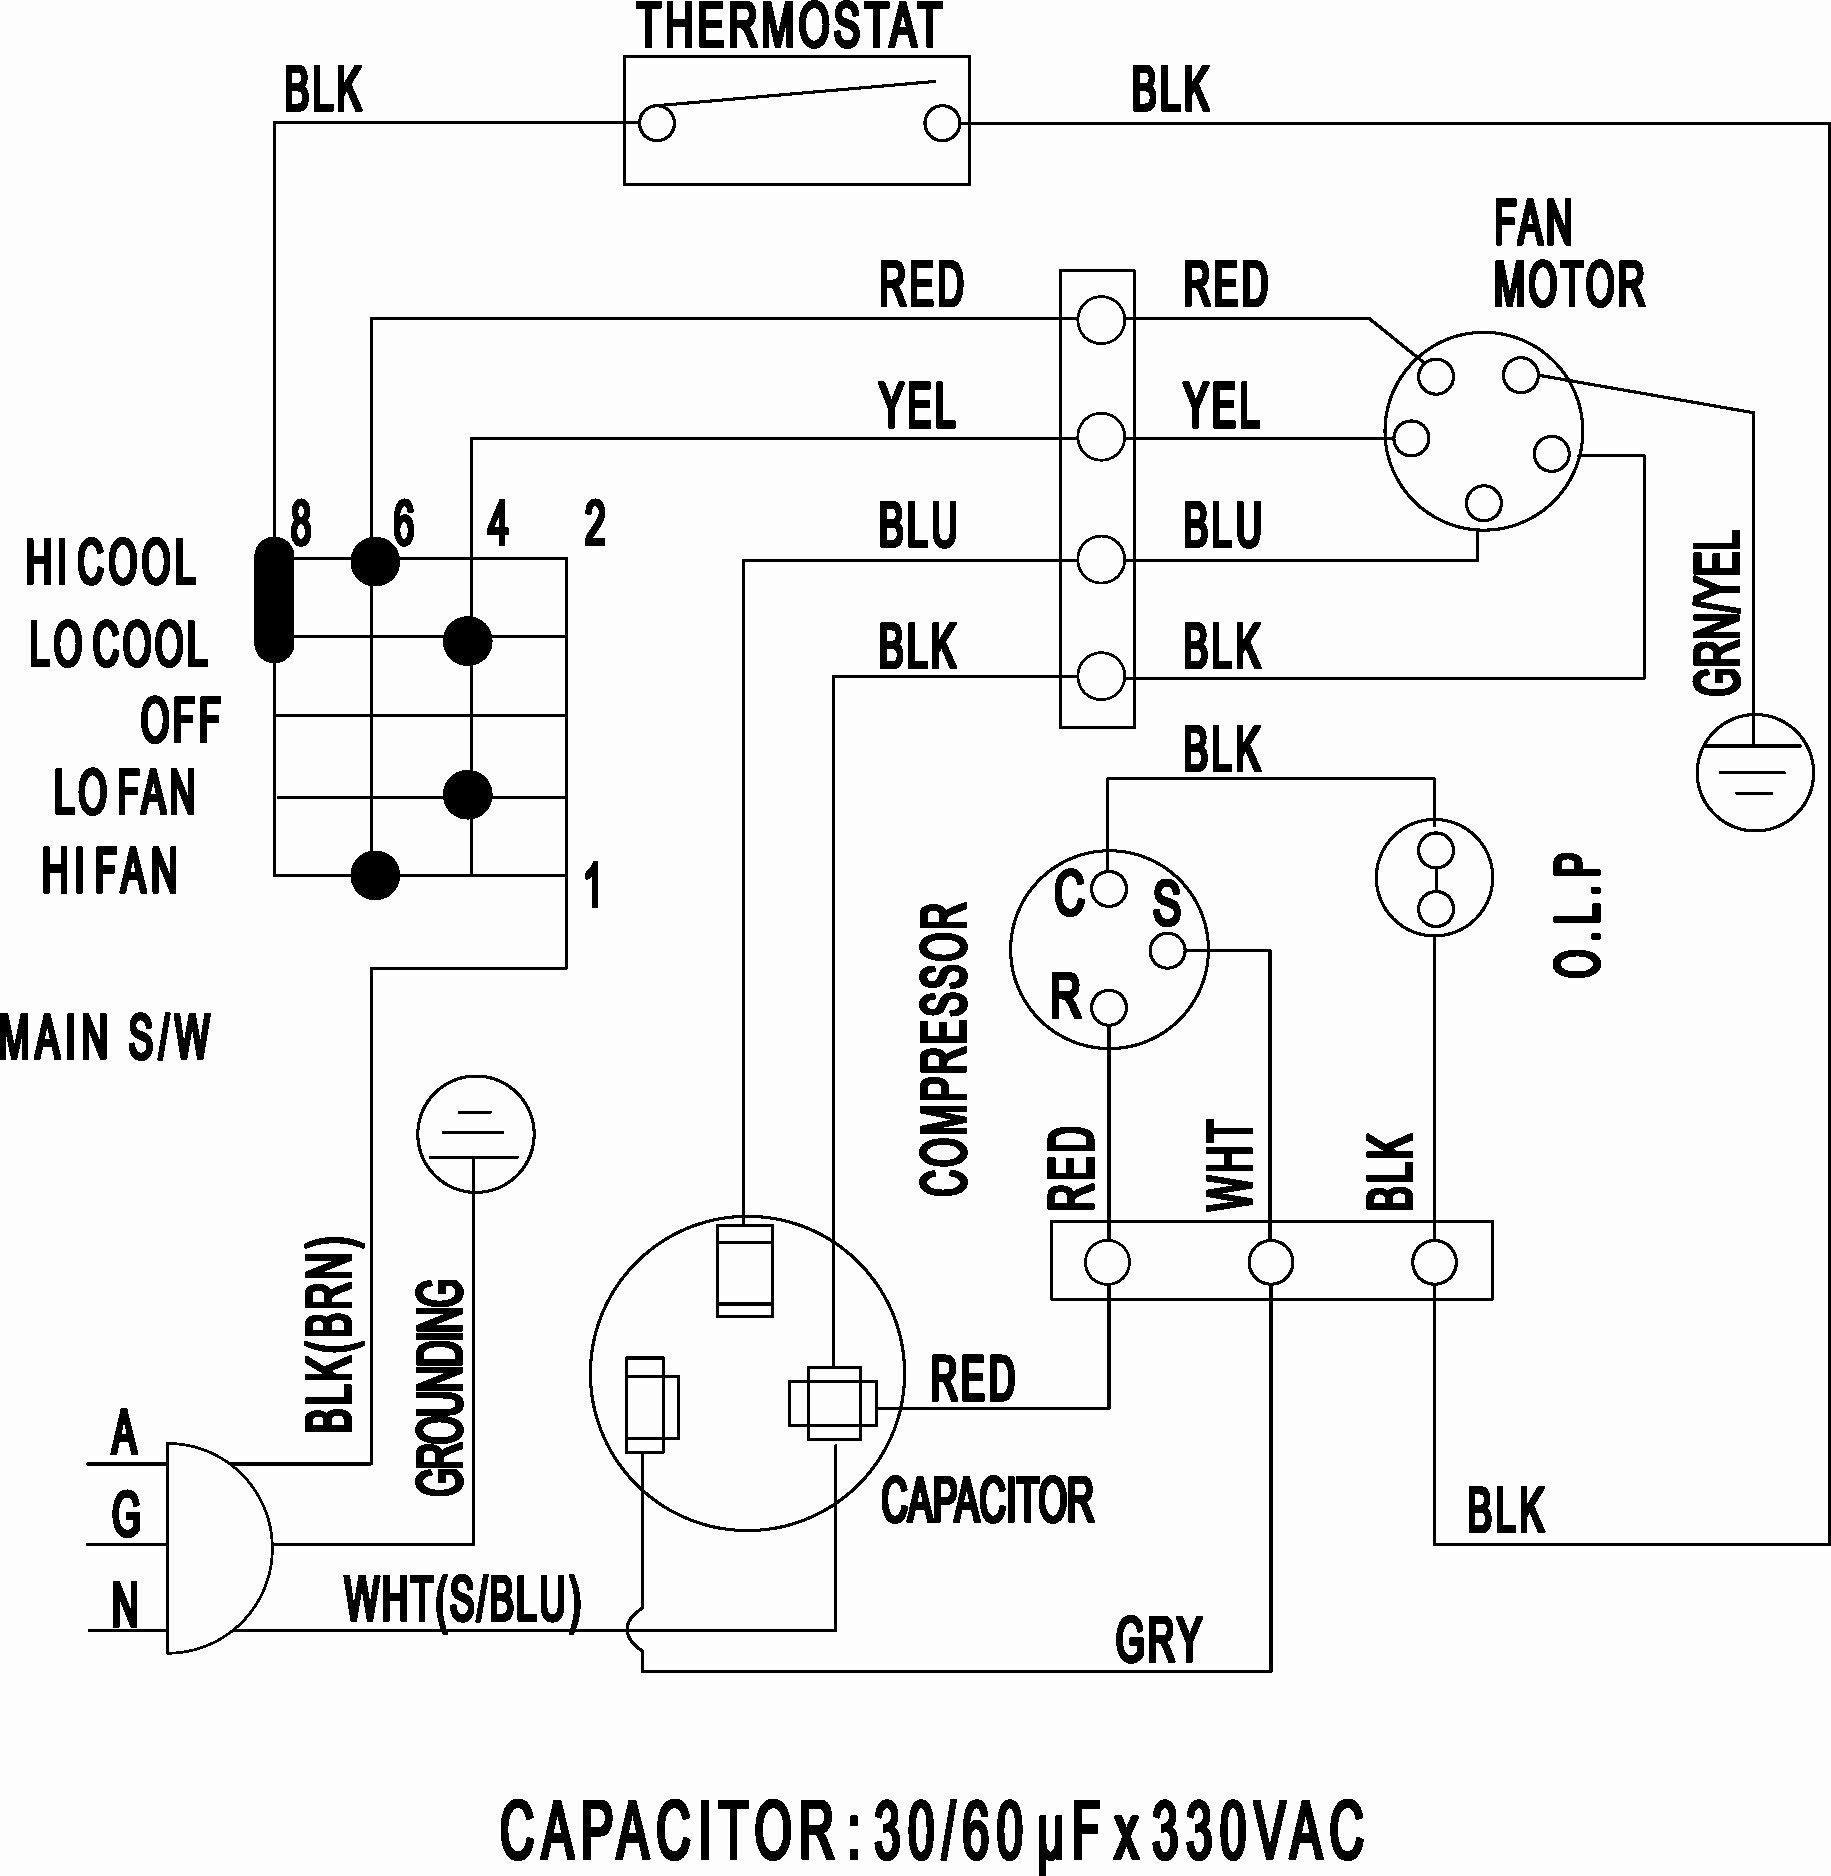 Electrical Wiring Diagram Legend Http Bookingritzcarlton Info Electrical Wiring Diagram Legend Electrical Symbols Electrical Wiring Home Electrical Wiring